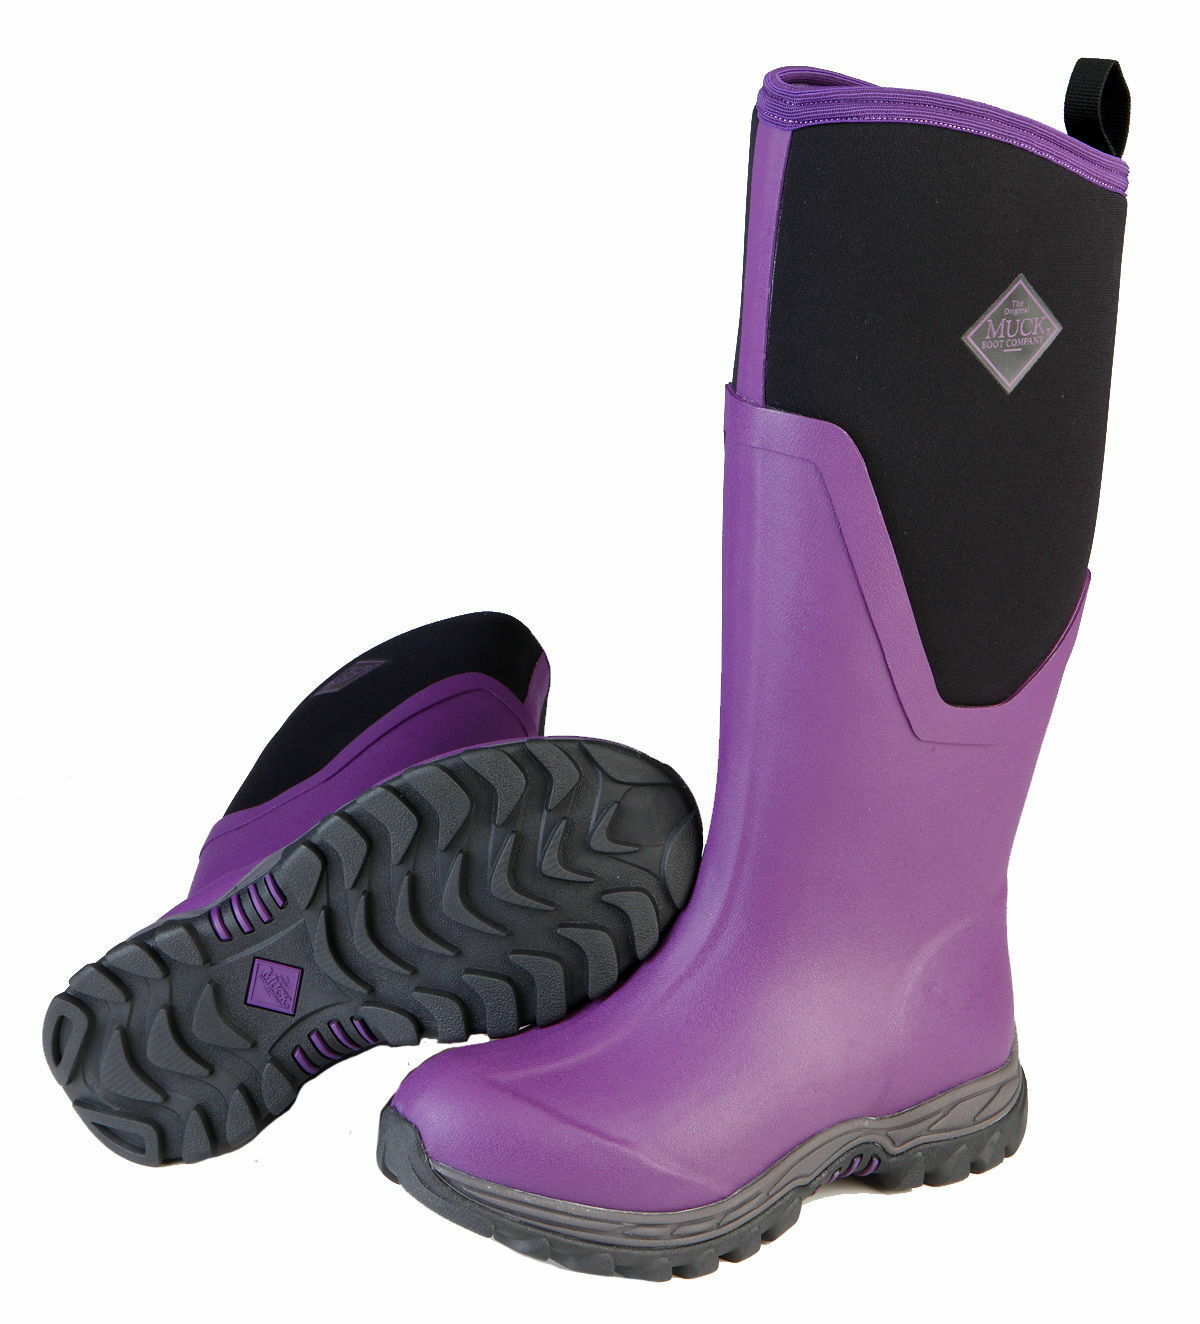 Womens Arctic Sport II Tall Muck Boot AS2M-500 Size 11